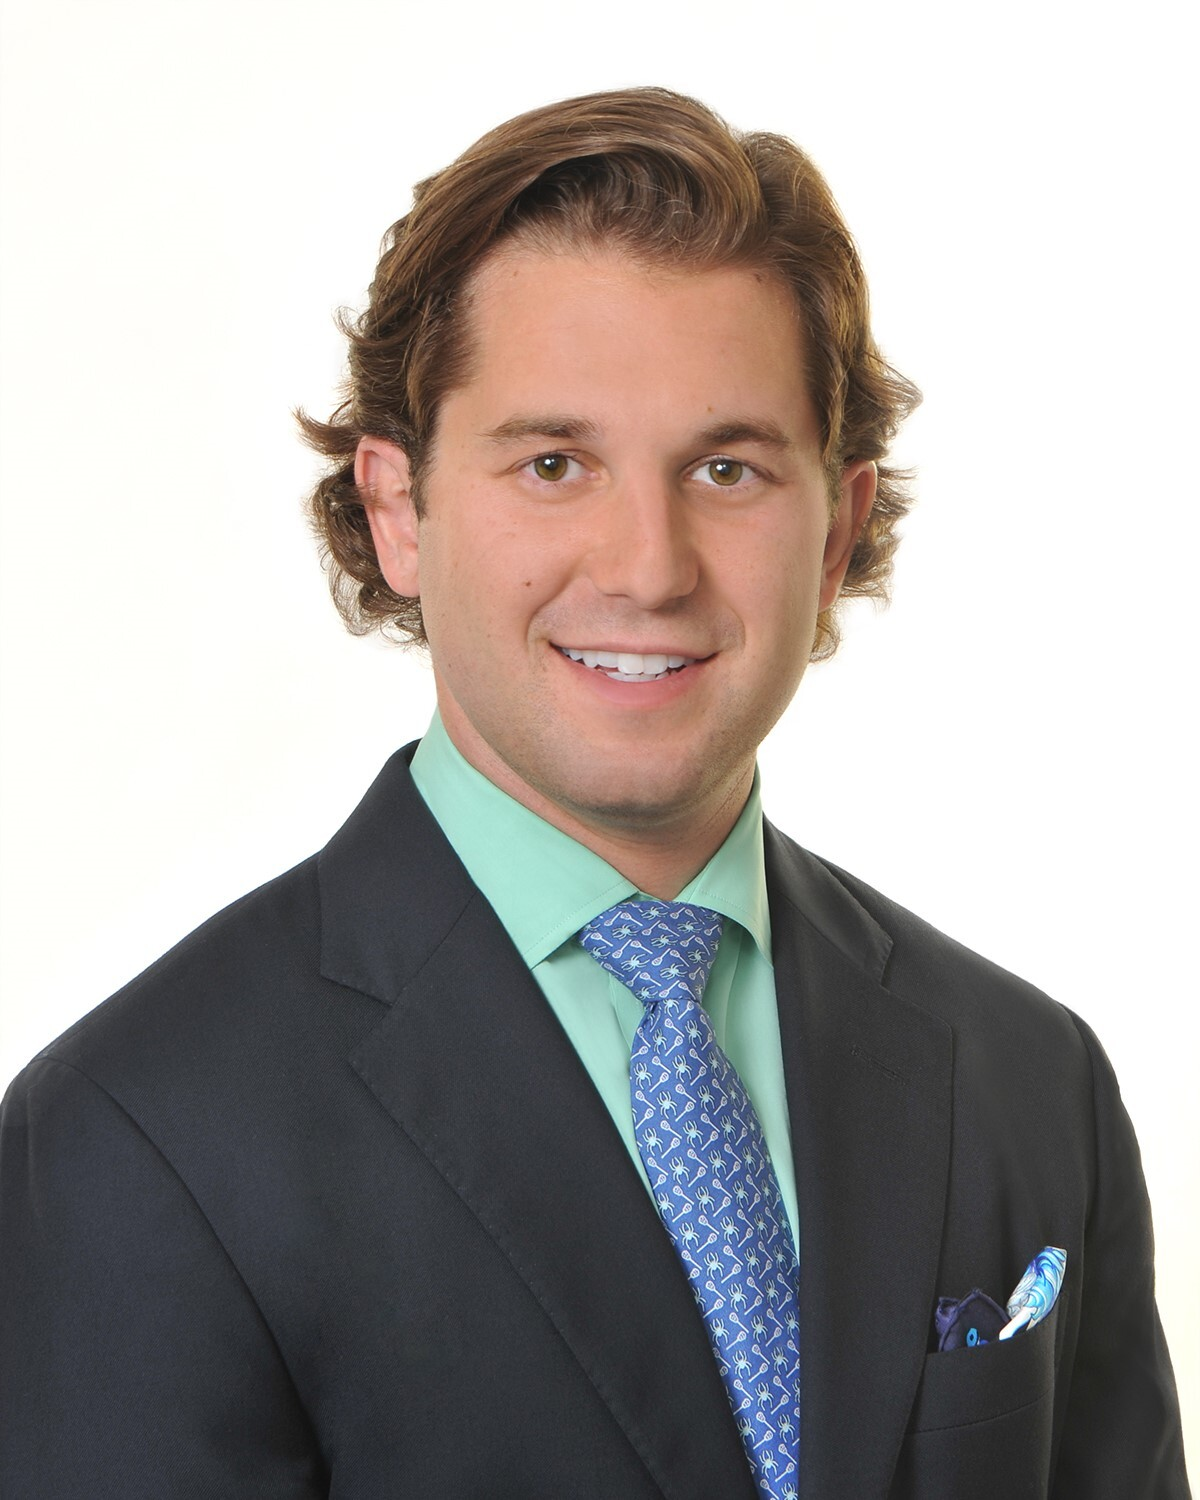 Get the right guidance for you